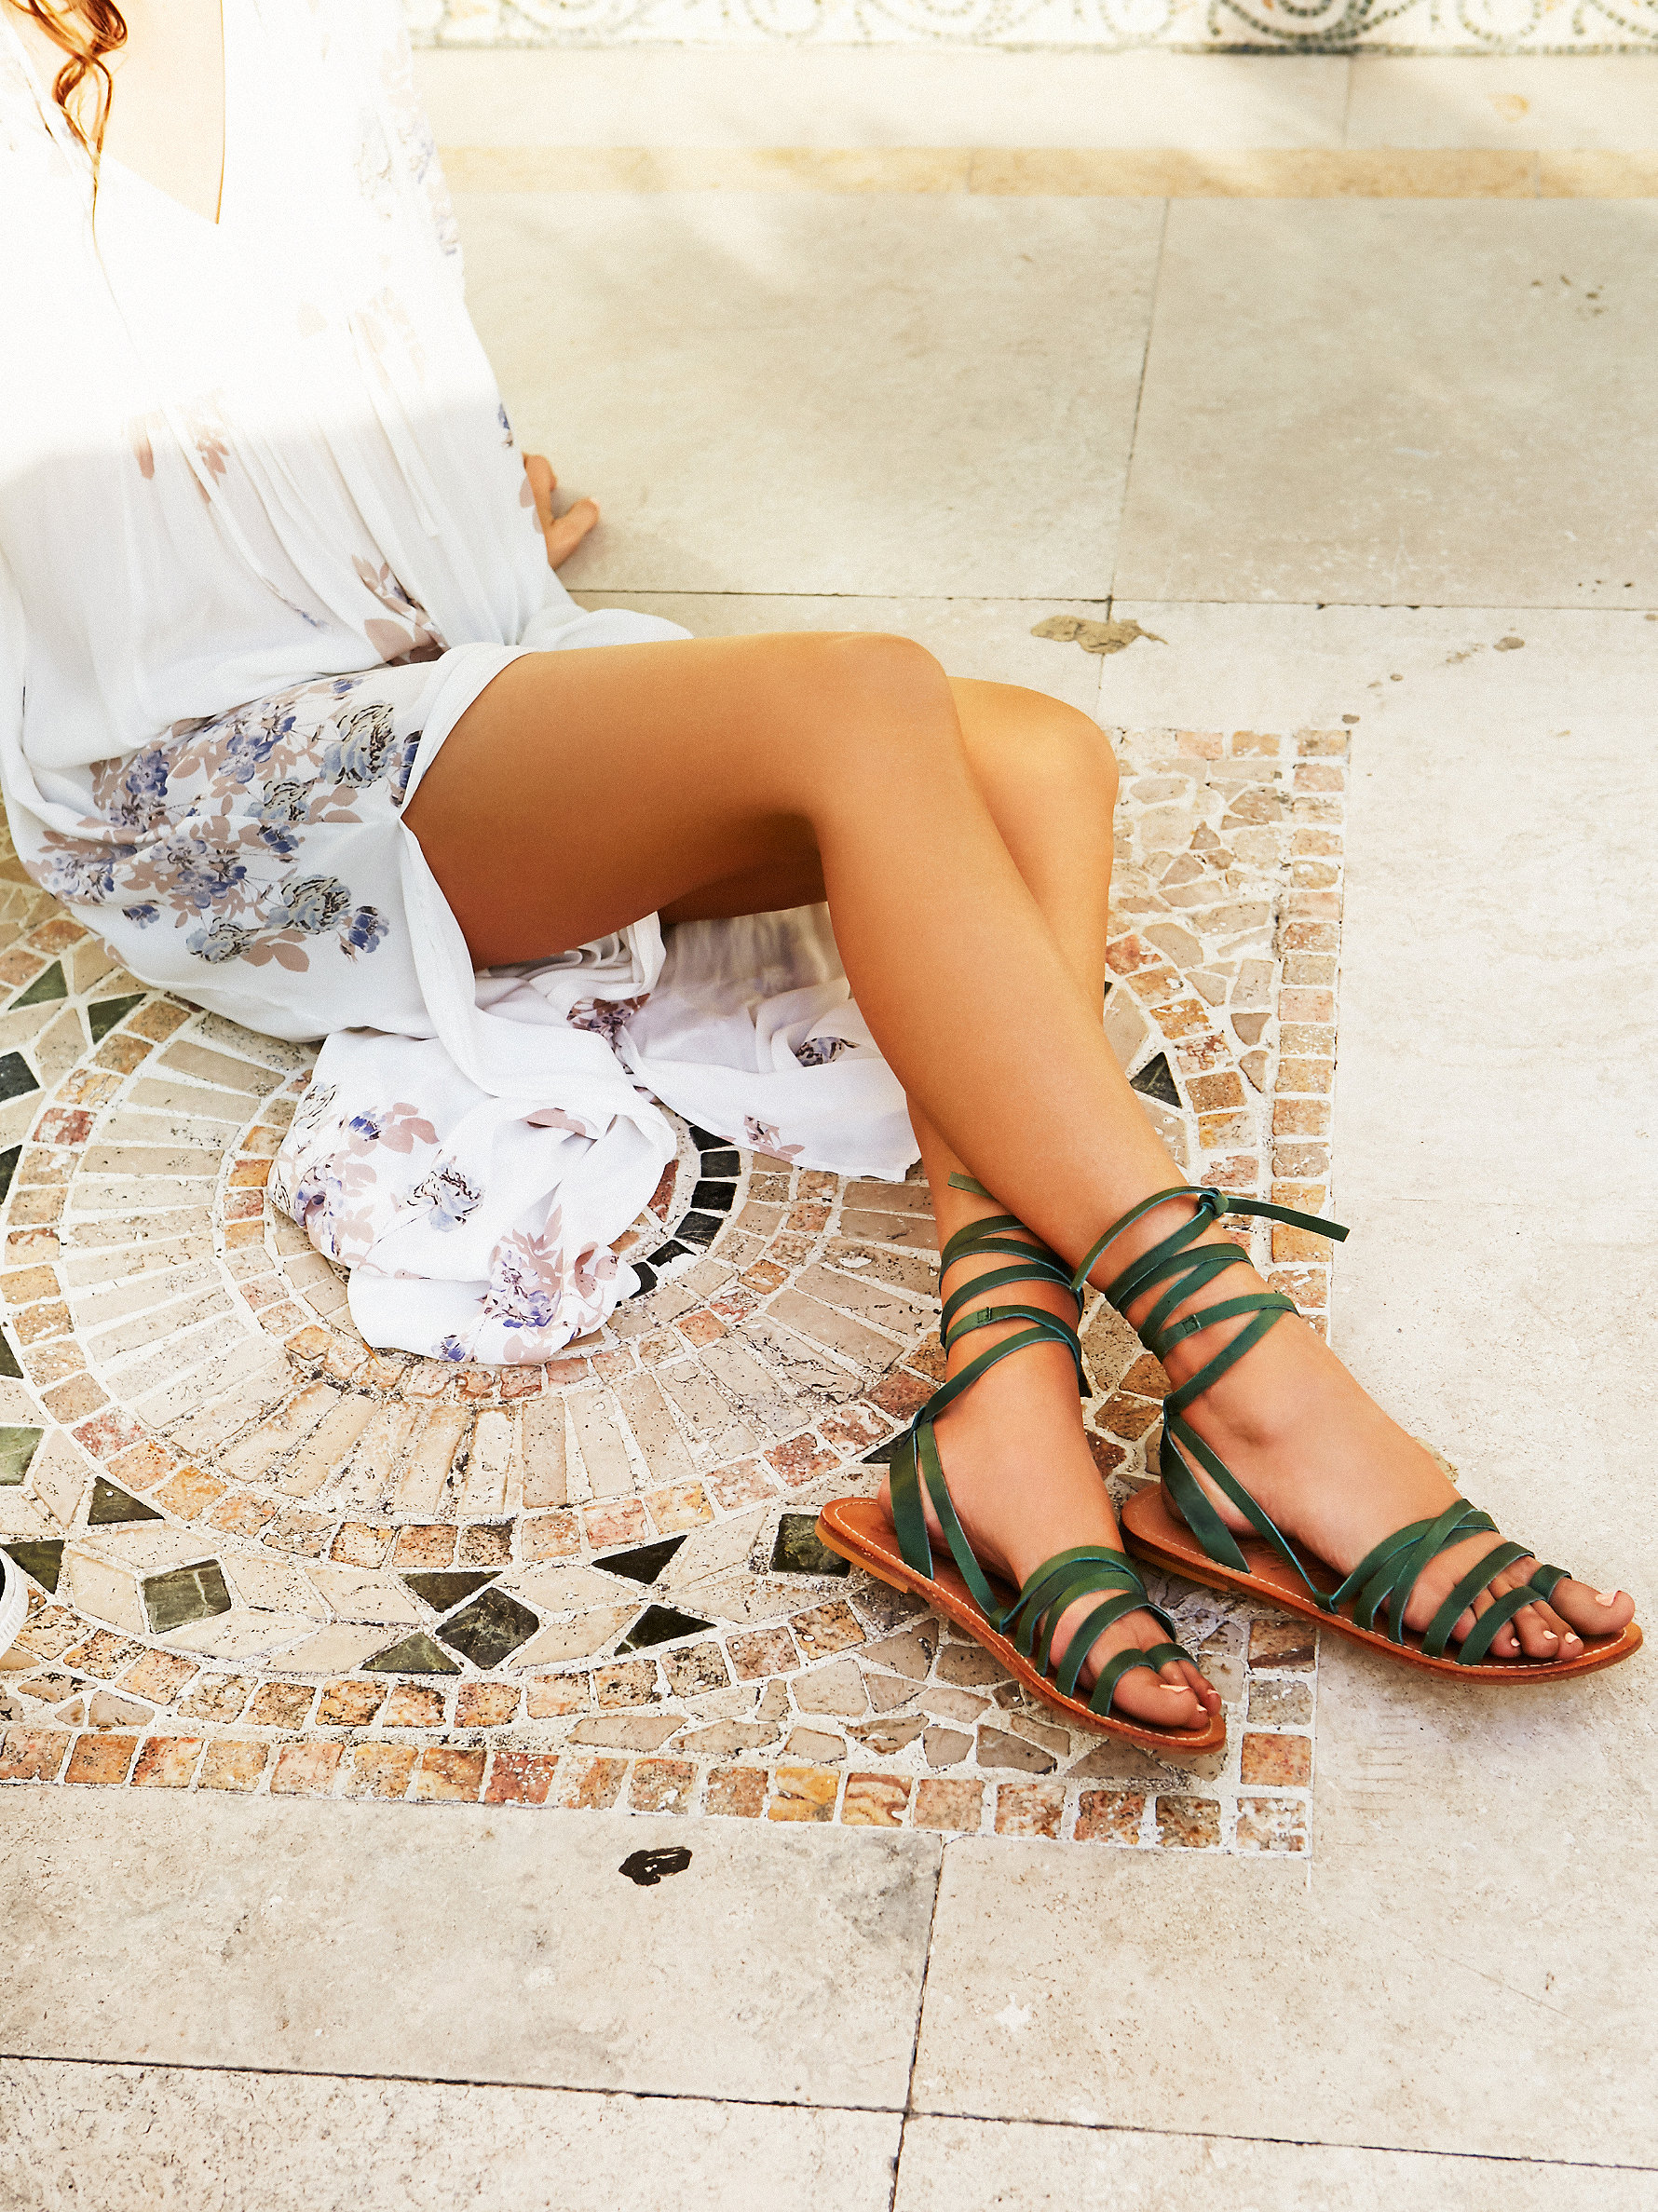 Free People's Sexy Strappy Sandals - FP Collection Harpoon Wrap Sandal at Free People Clothing Boutique